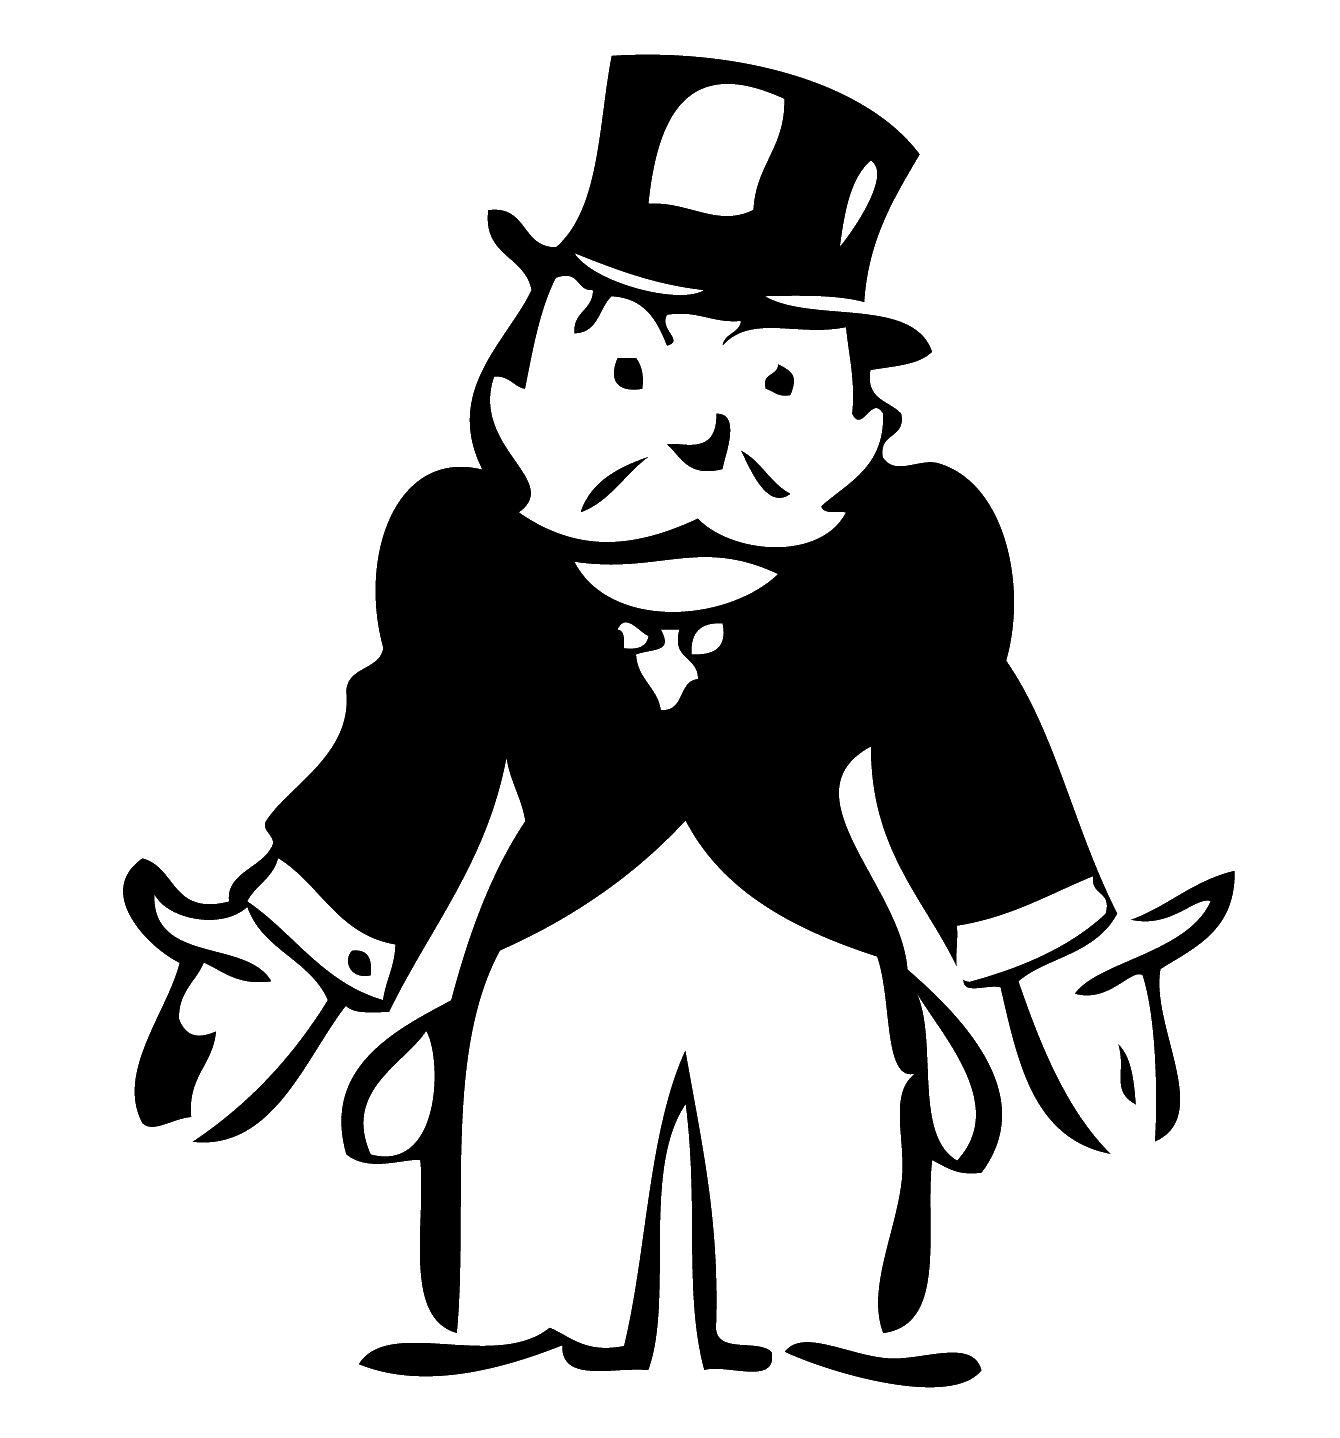 This is a graphic of Terrible Monopoly Man Drawing